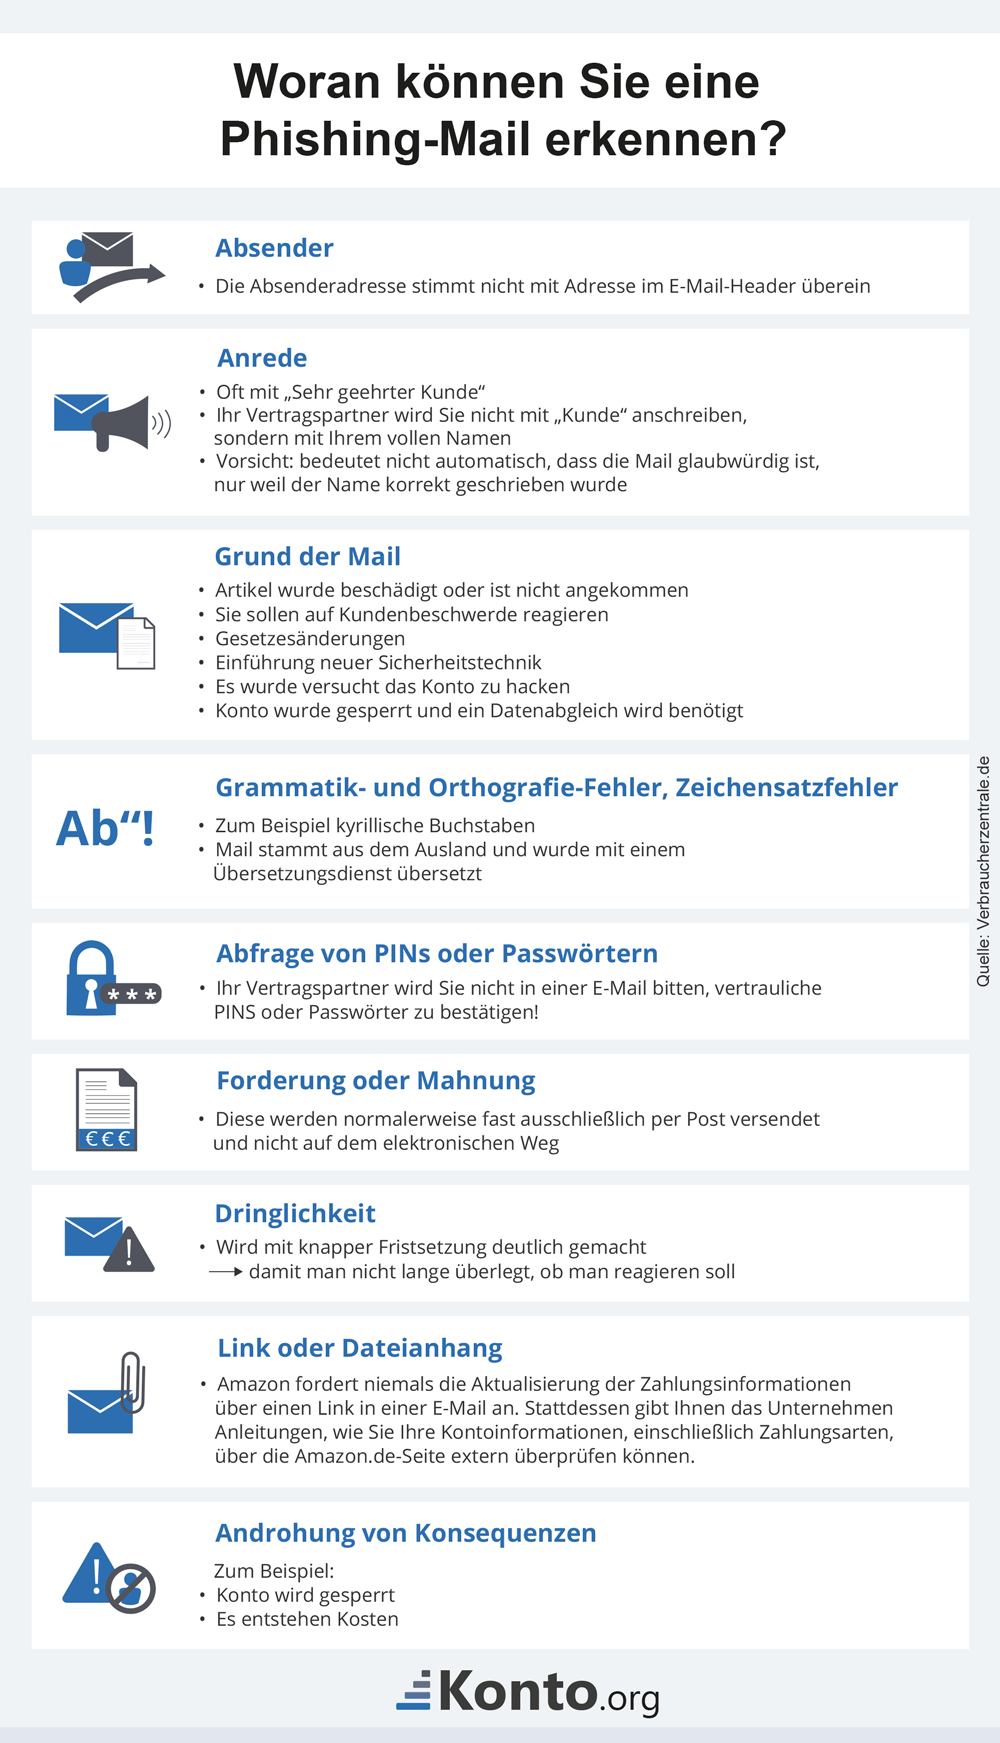 infografik-merkmale-phishing-mail